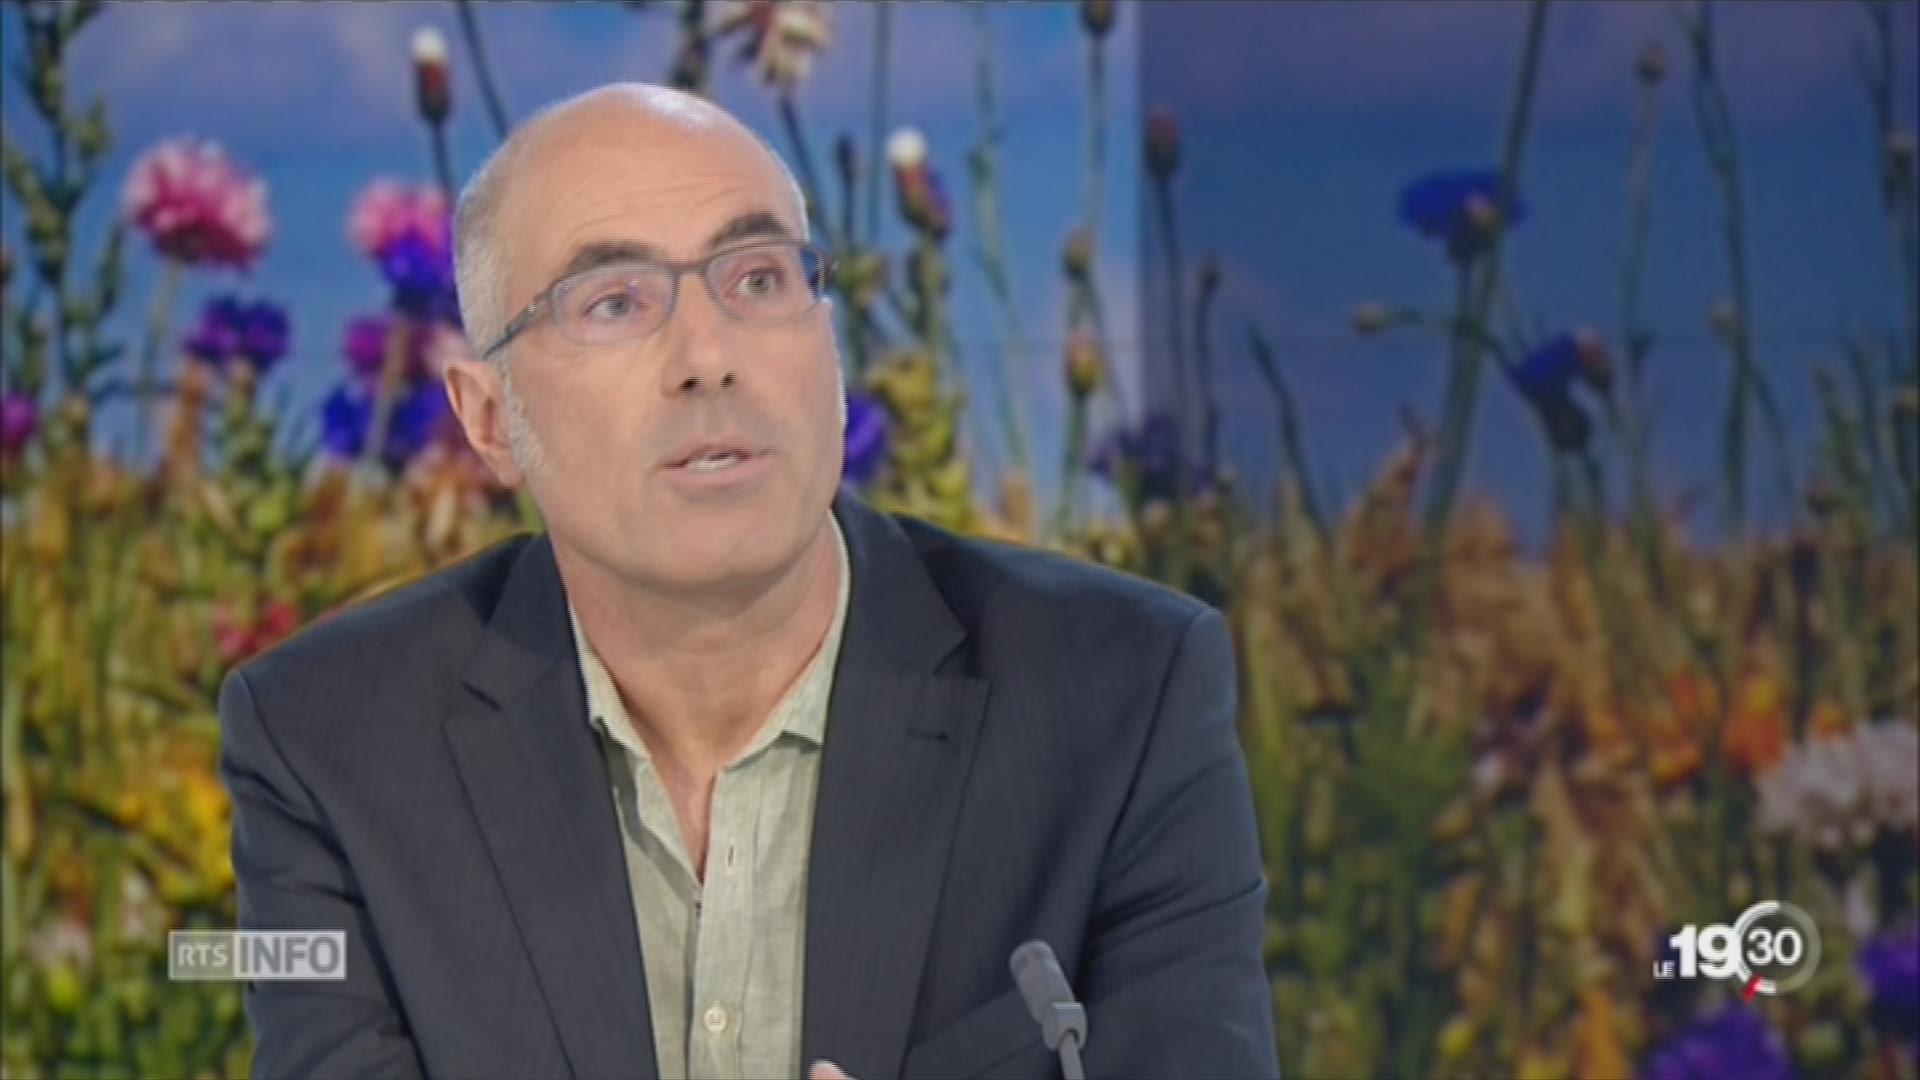 Pesticides: l'interview du professeur Raphaël Arlettaz